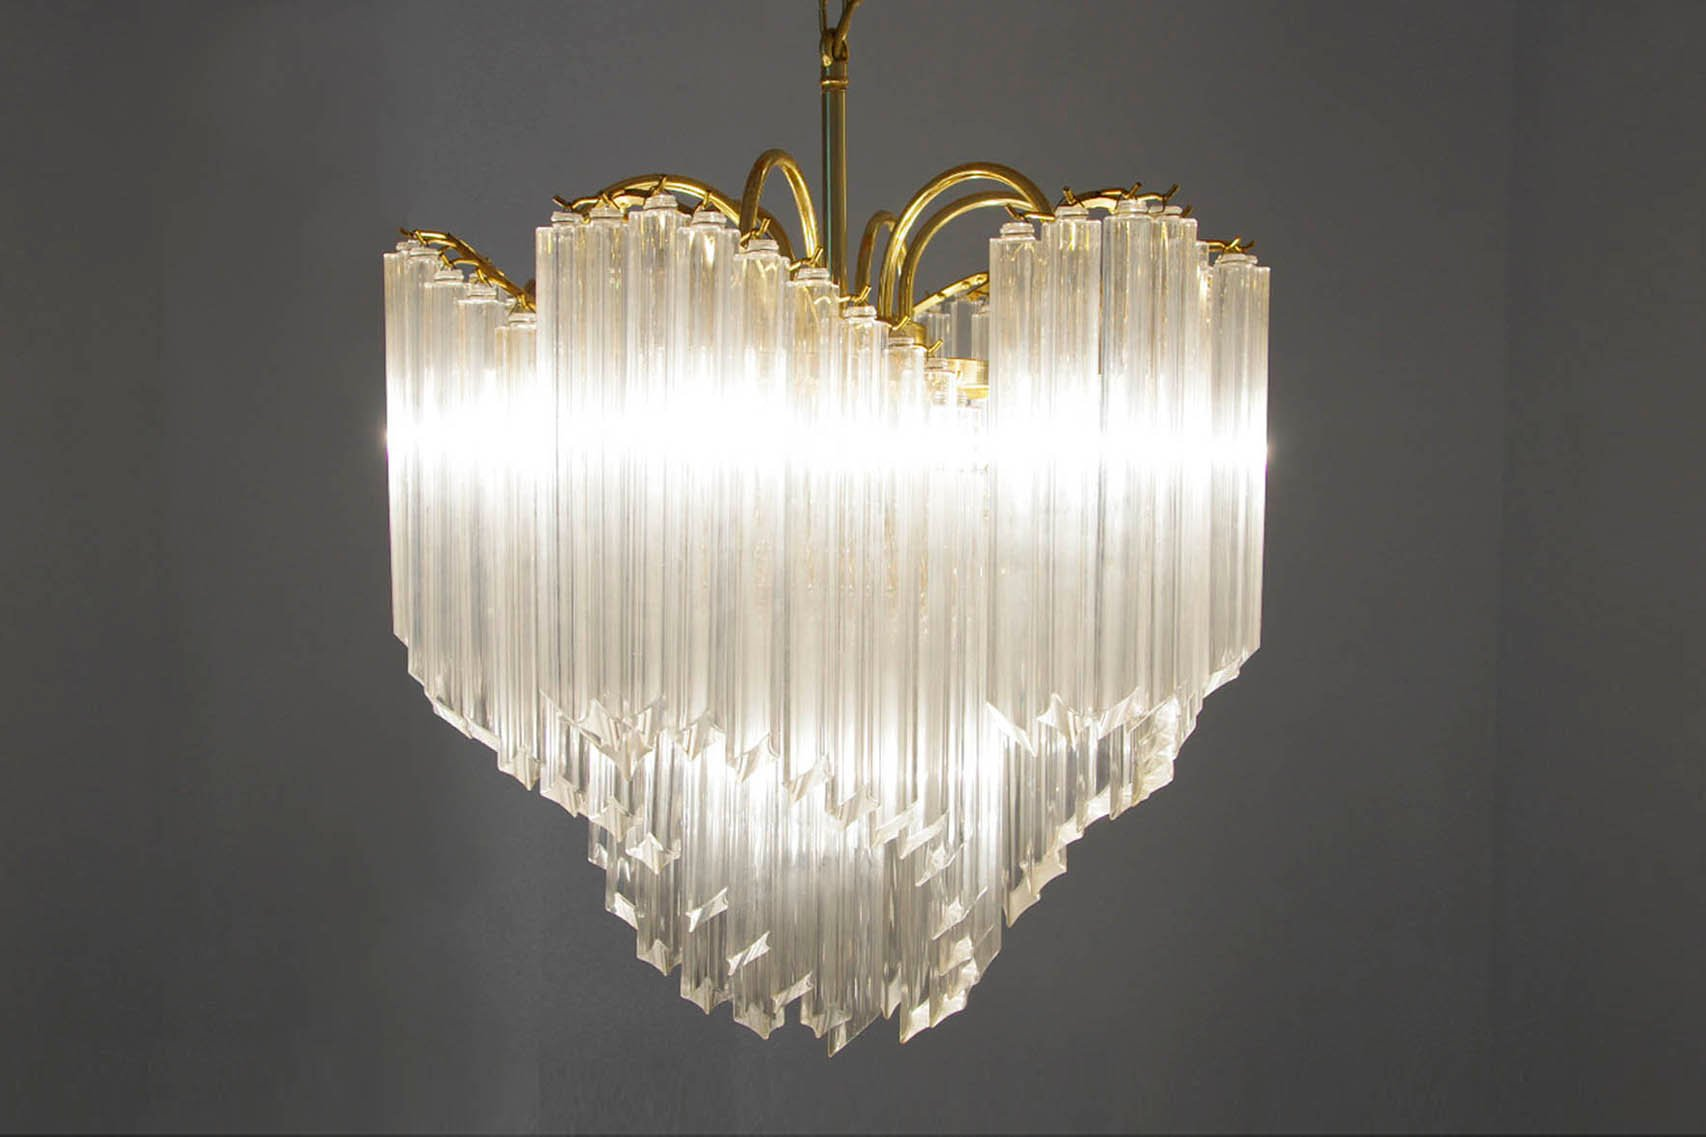 Italian Modern Murano Glass Chandelier 1950 for sale at Pamono